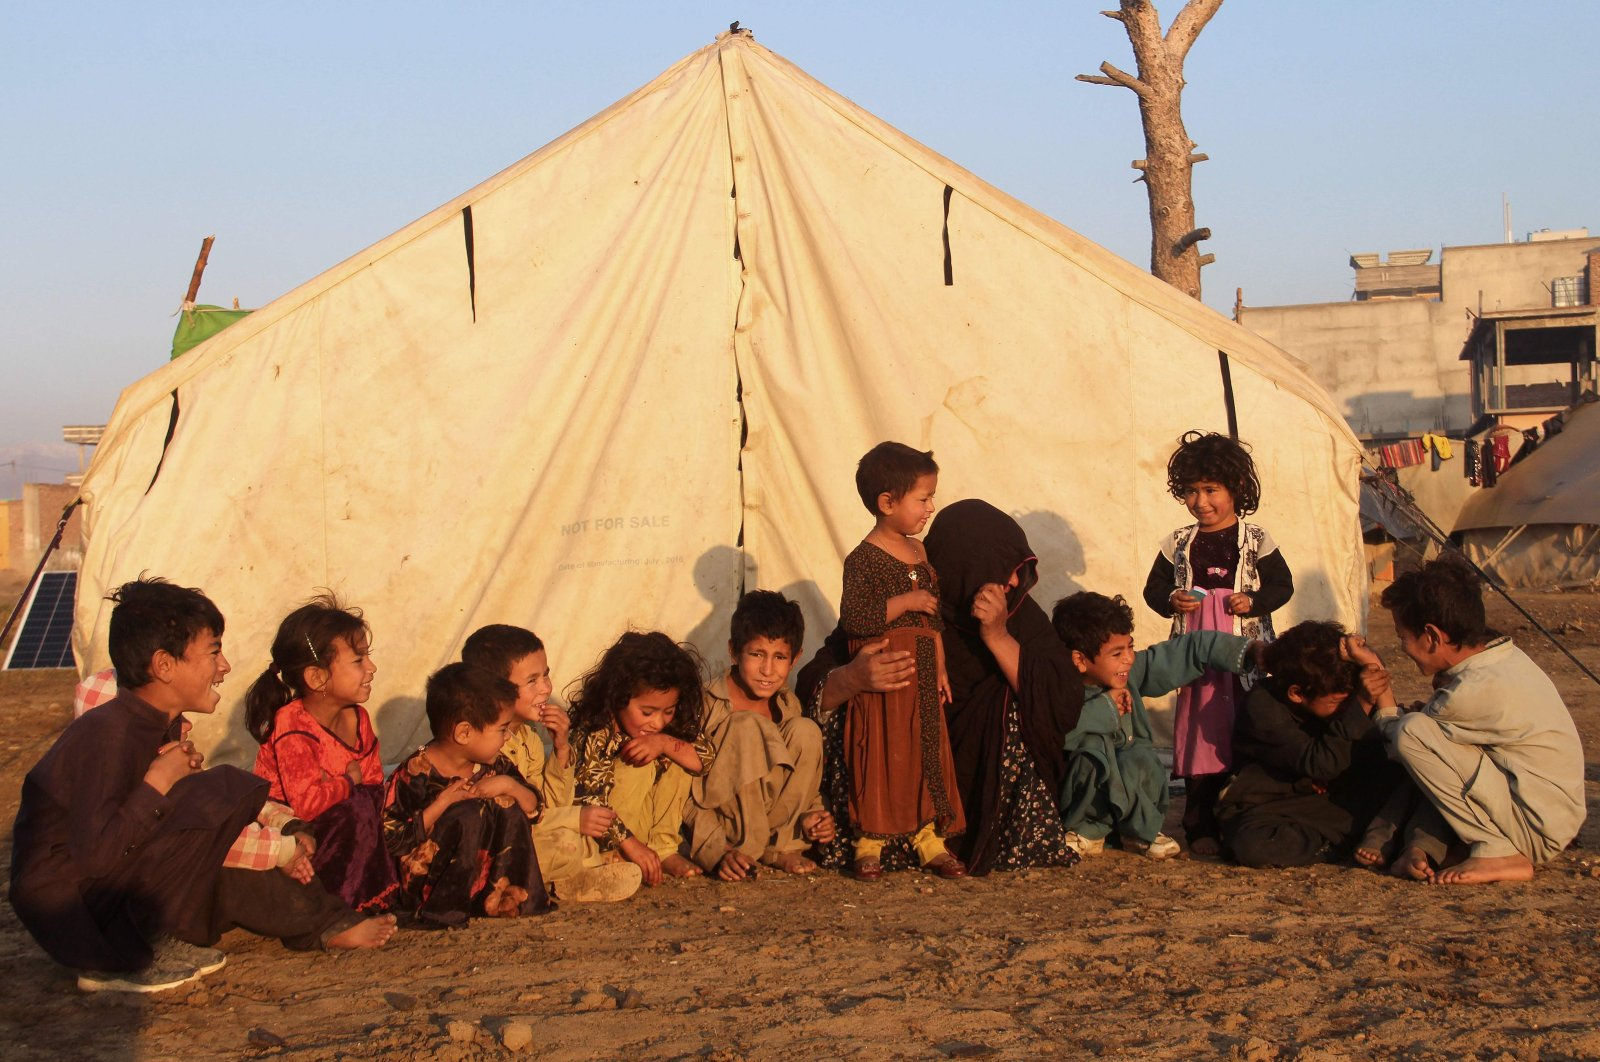 Internally displaced children sit outside a tent at a refugee camp in Khost province, eastern Afghanistan, Nov. 17, 2020. (AFP Photo)